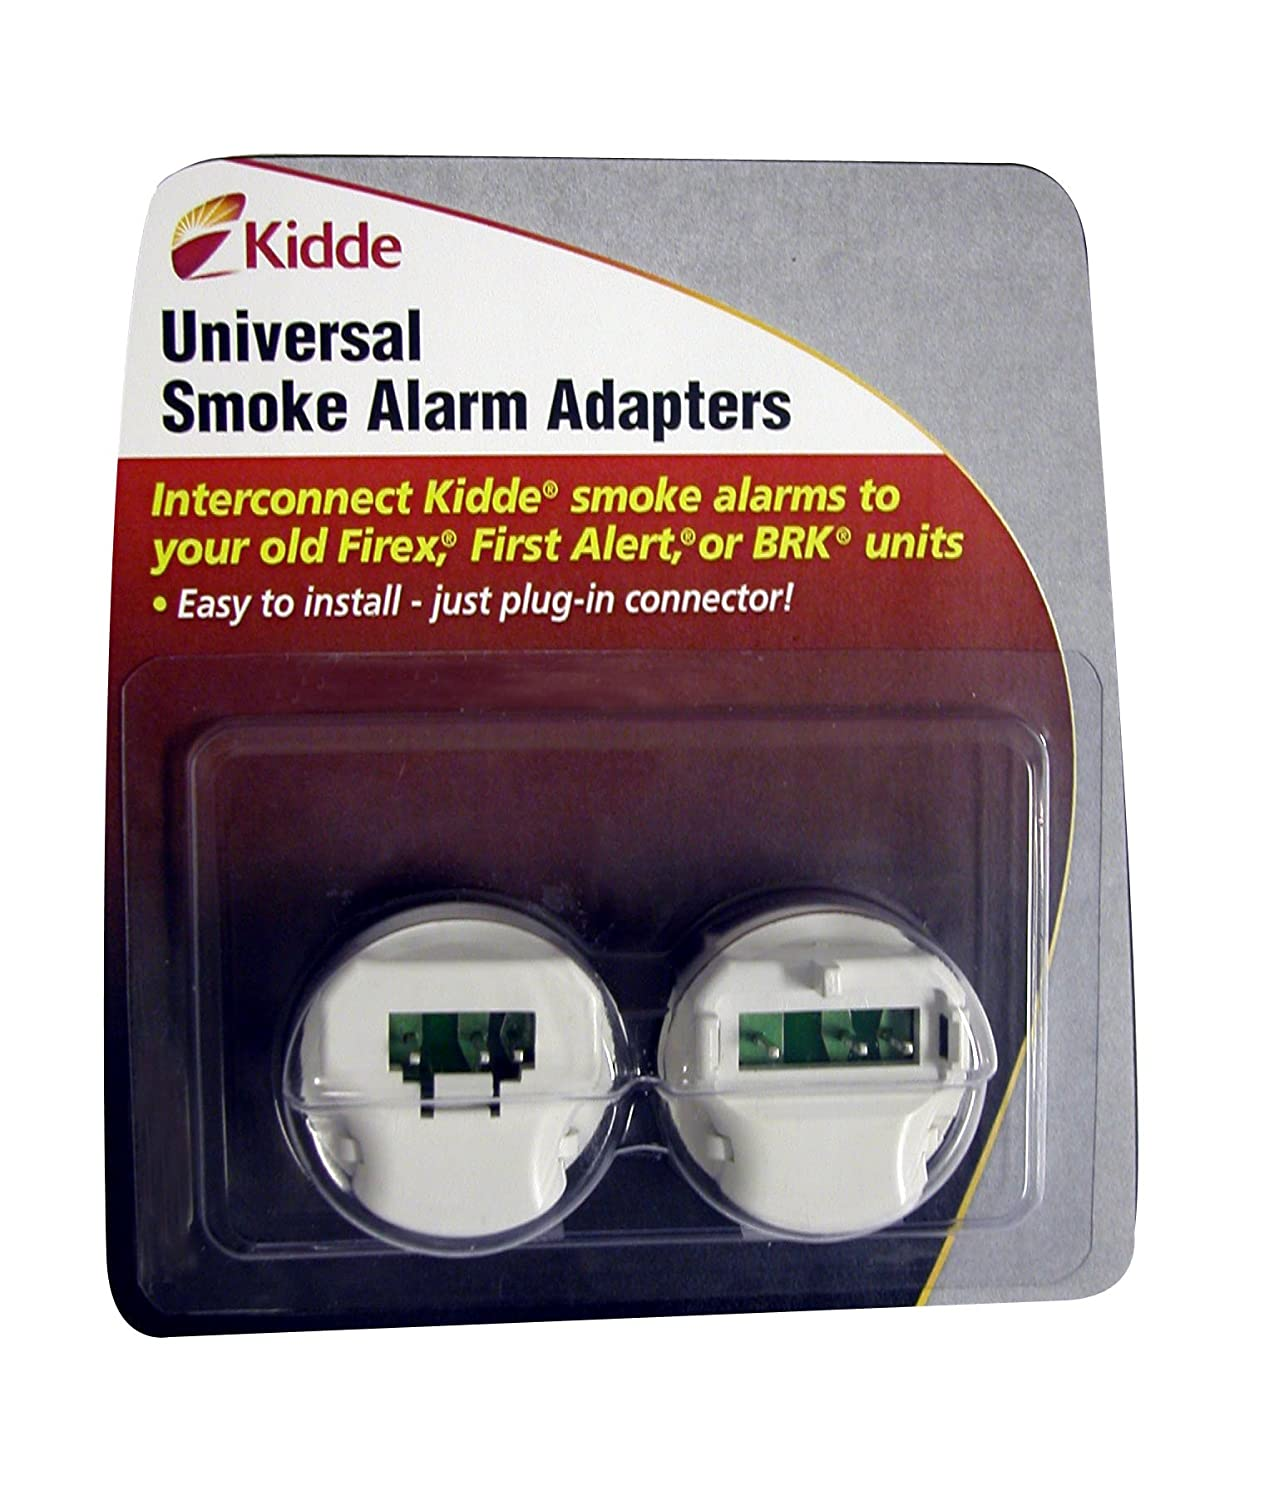 814Se4H5loL._SL1500_ kidde ka b, ka f universal smoke alarm adapters, 2 different units  at reclaimingppi.co